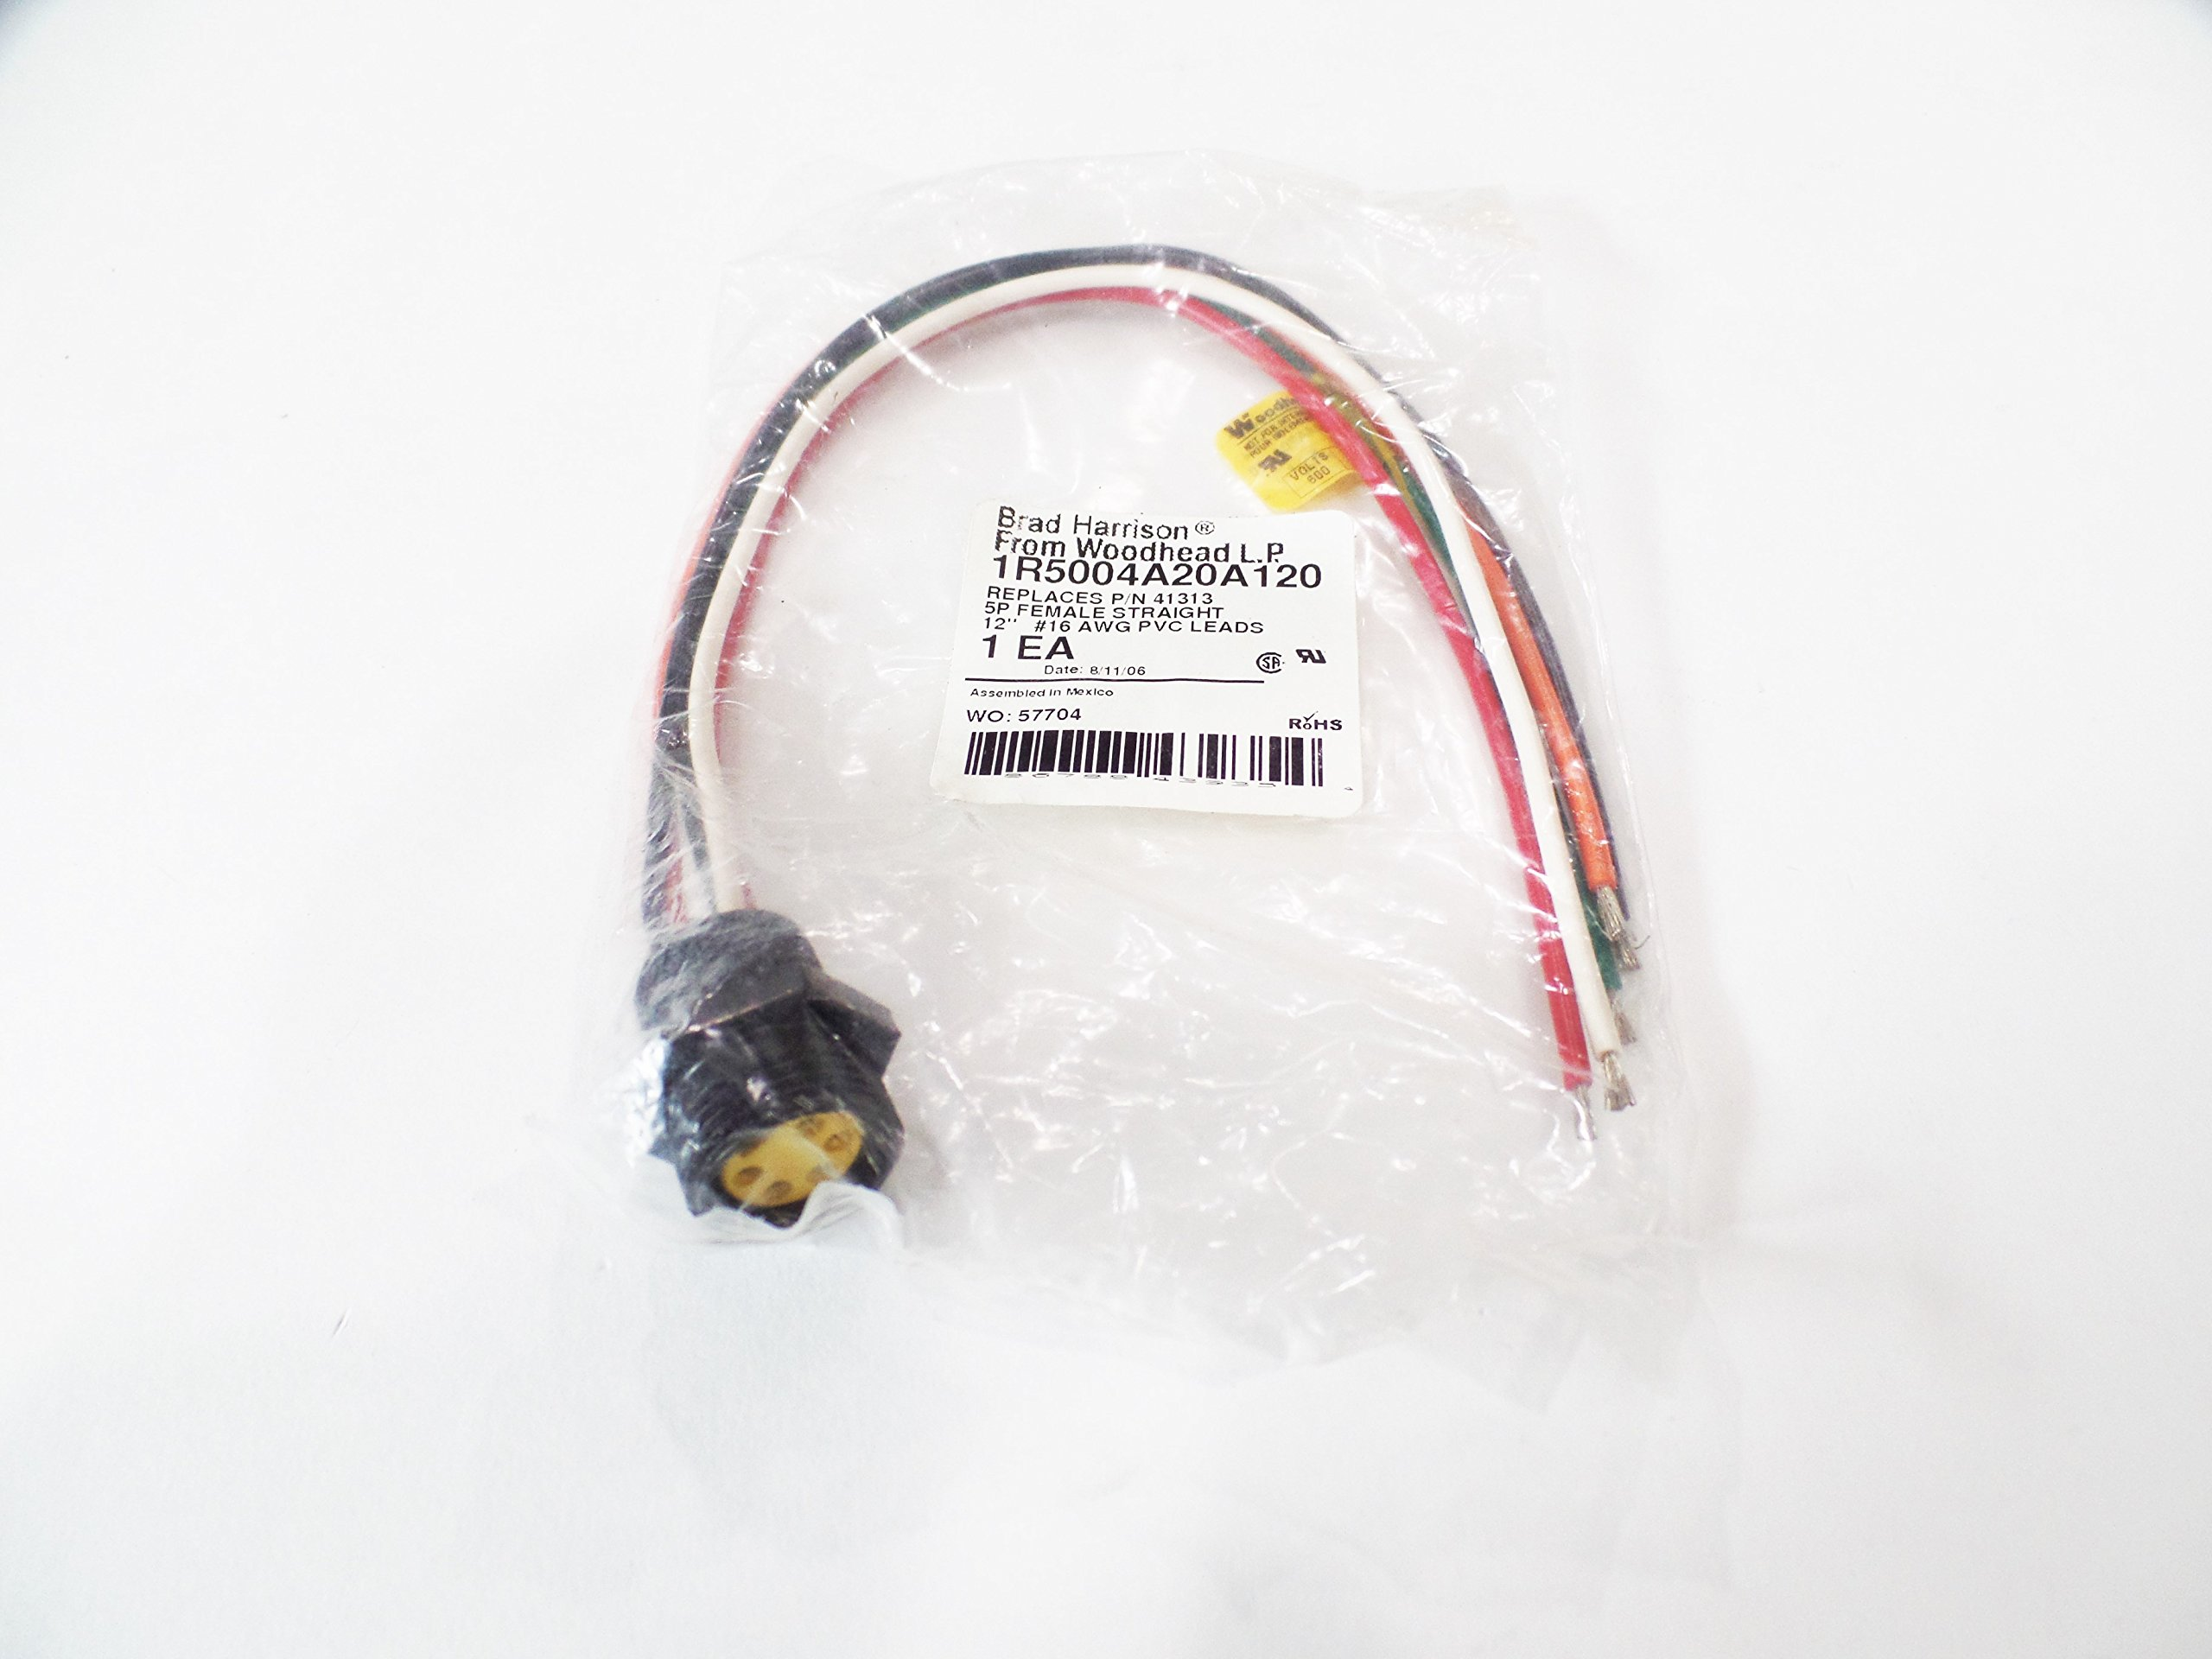 Woodhead 1R5004A20A120 Micro-Change (M12) Single Keyway with PG7 Cable Fitting MIC 4P M/M-ATTCH STR PG7 SCREW